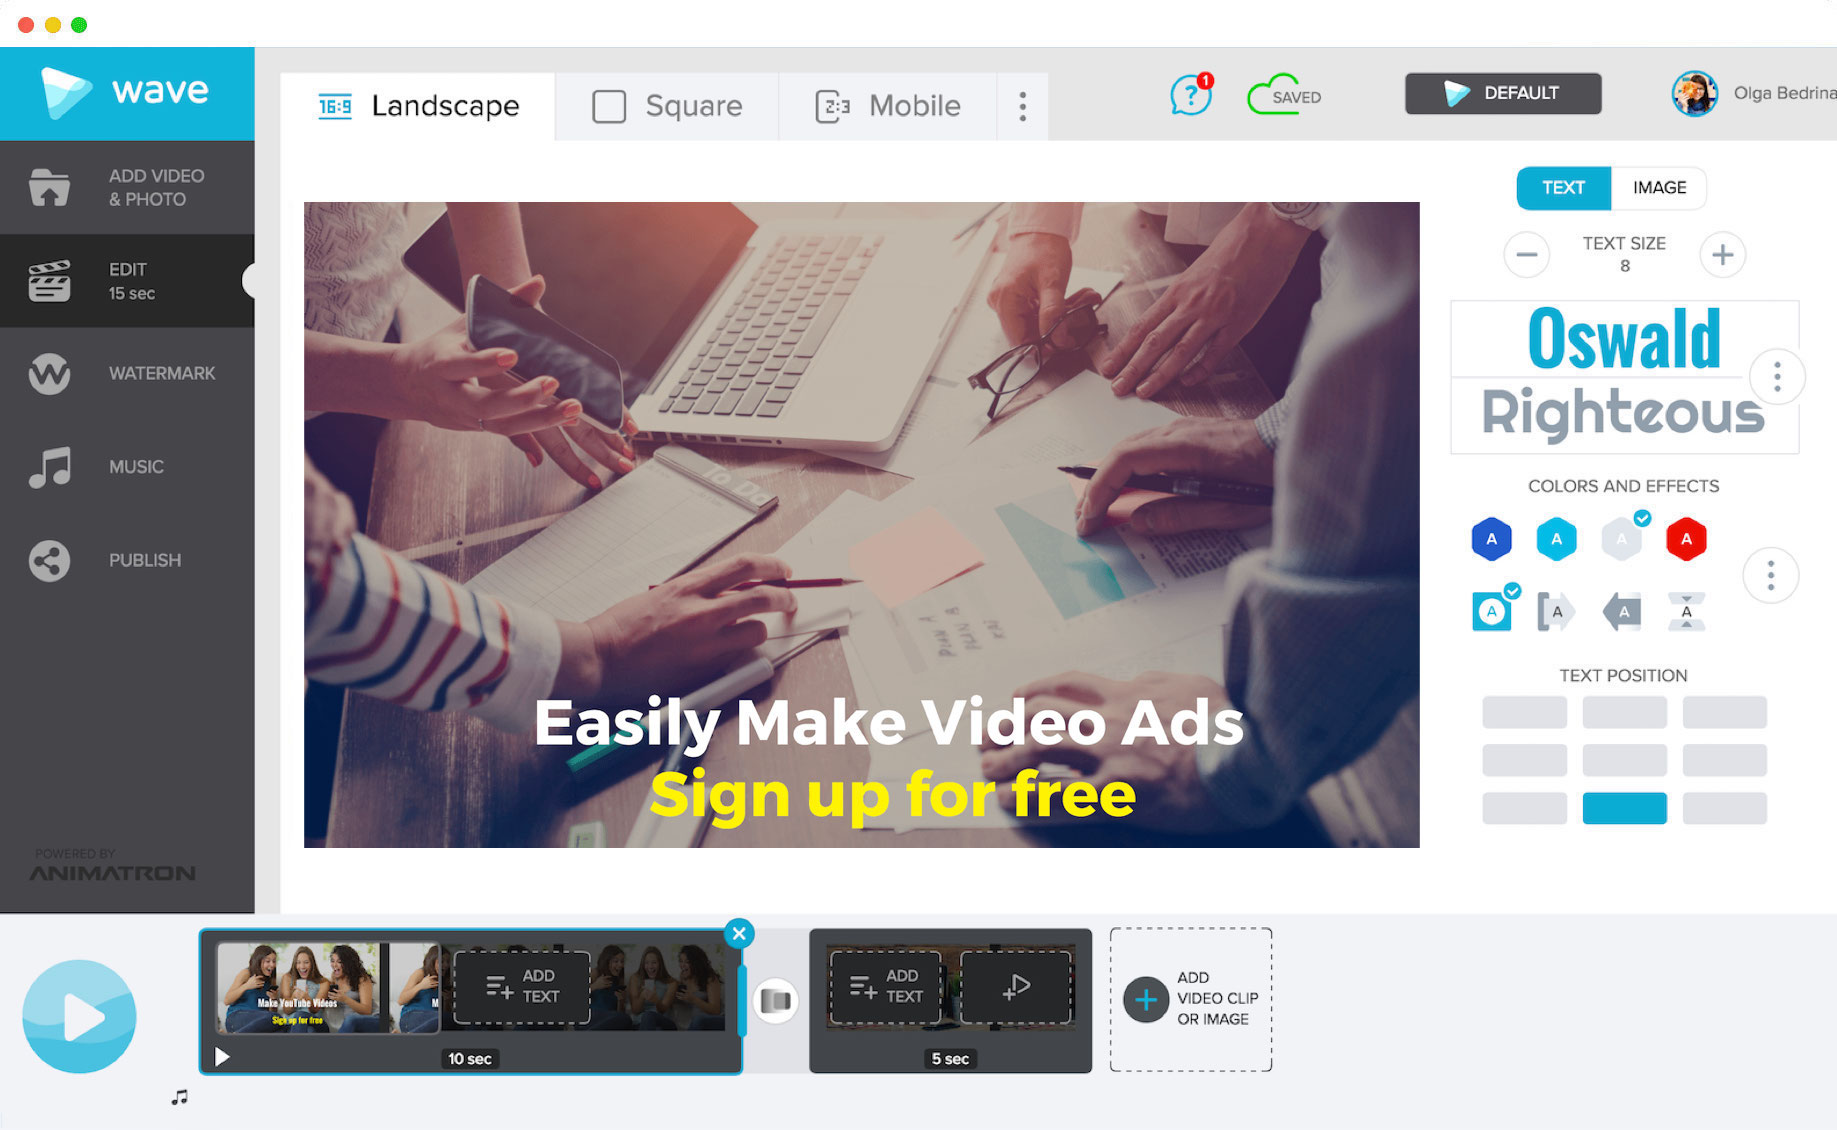 Learn how to make video ads easily with Wave.video, an online video maker